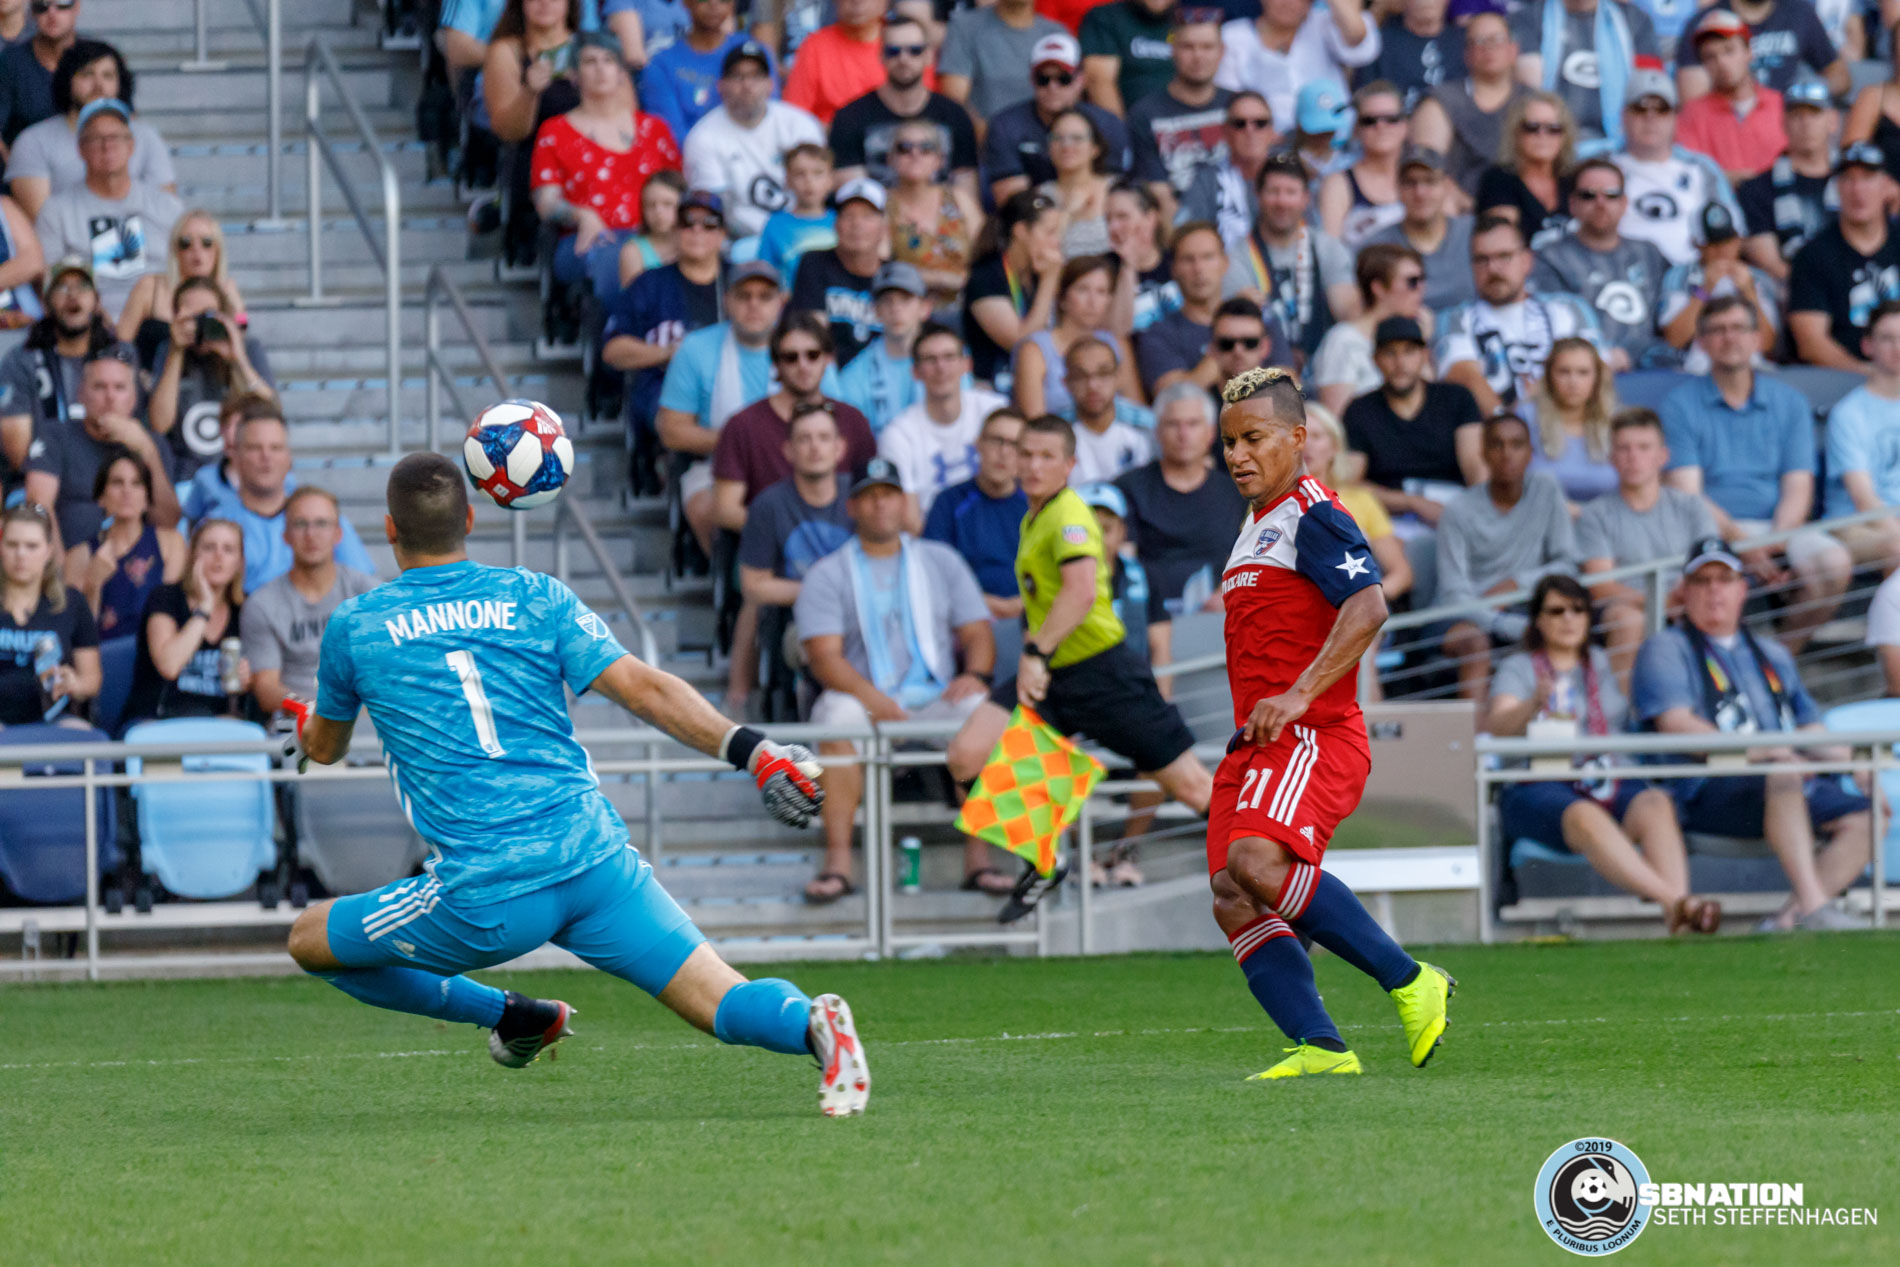 July 13, 2019 - Saint Paul, Minnesota, United States - FC Dallas midfielder Michael Barrios (21) shoots the ball over Minnesota United goalkeeper Vito Mannone (1) during the match at Allianz Field.